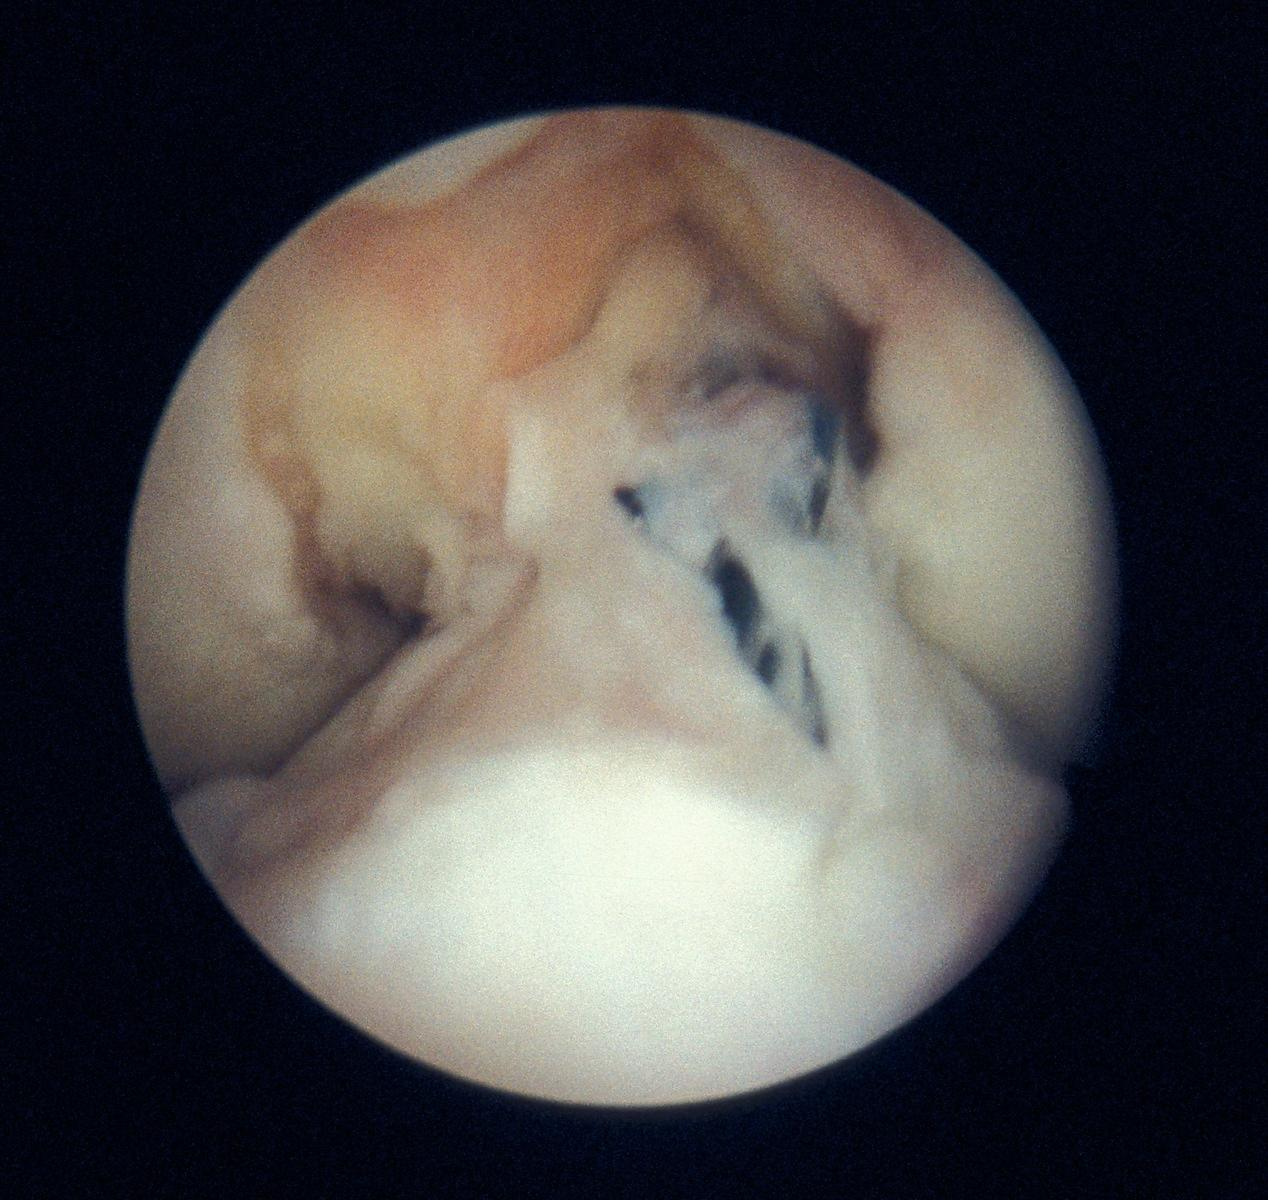 View of the intercondylar notch following repair to anterior cruciate ligament with Surgicraft ABC carbon fibre polyester ligament, immediately after implantation. Also note removal of osteophytes aroound the interaconylar notch.